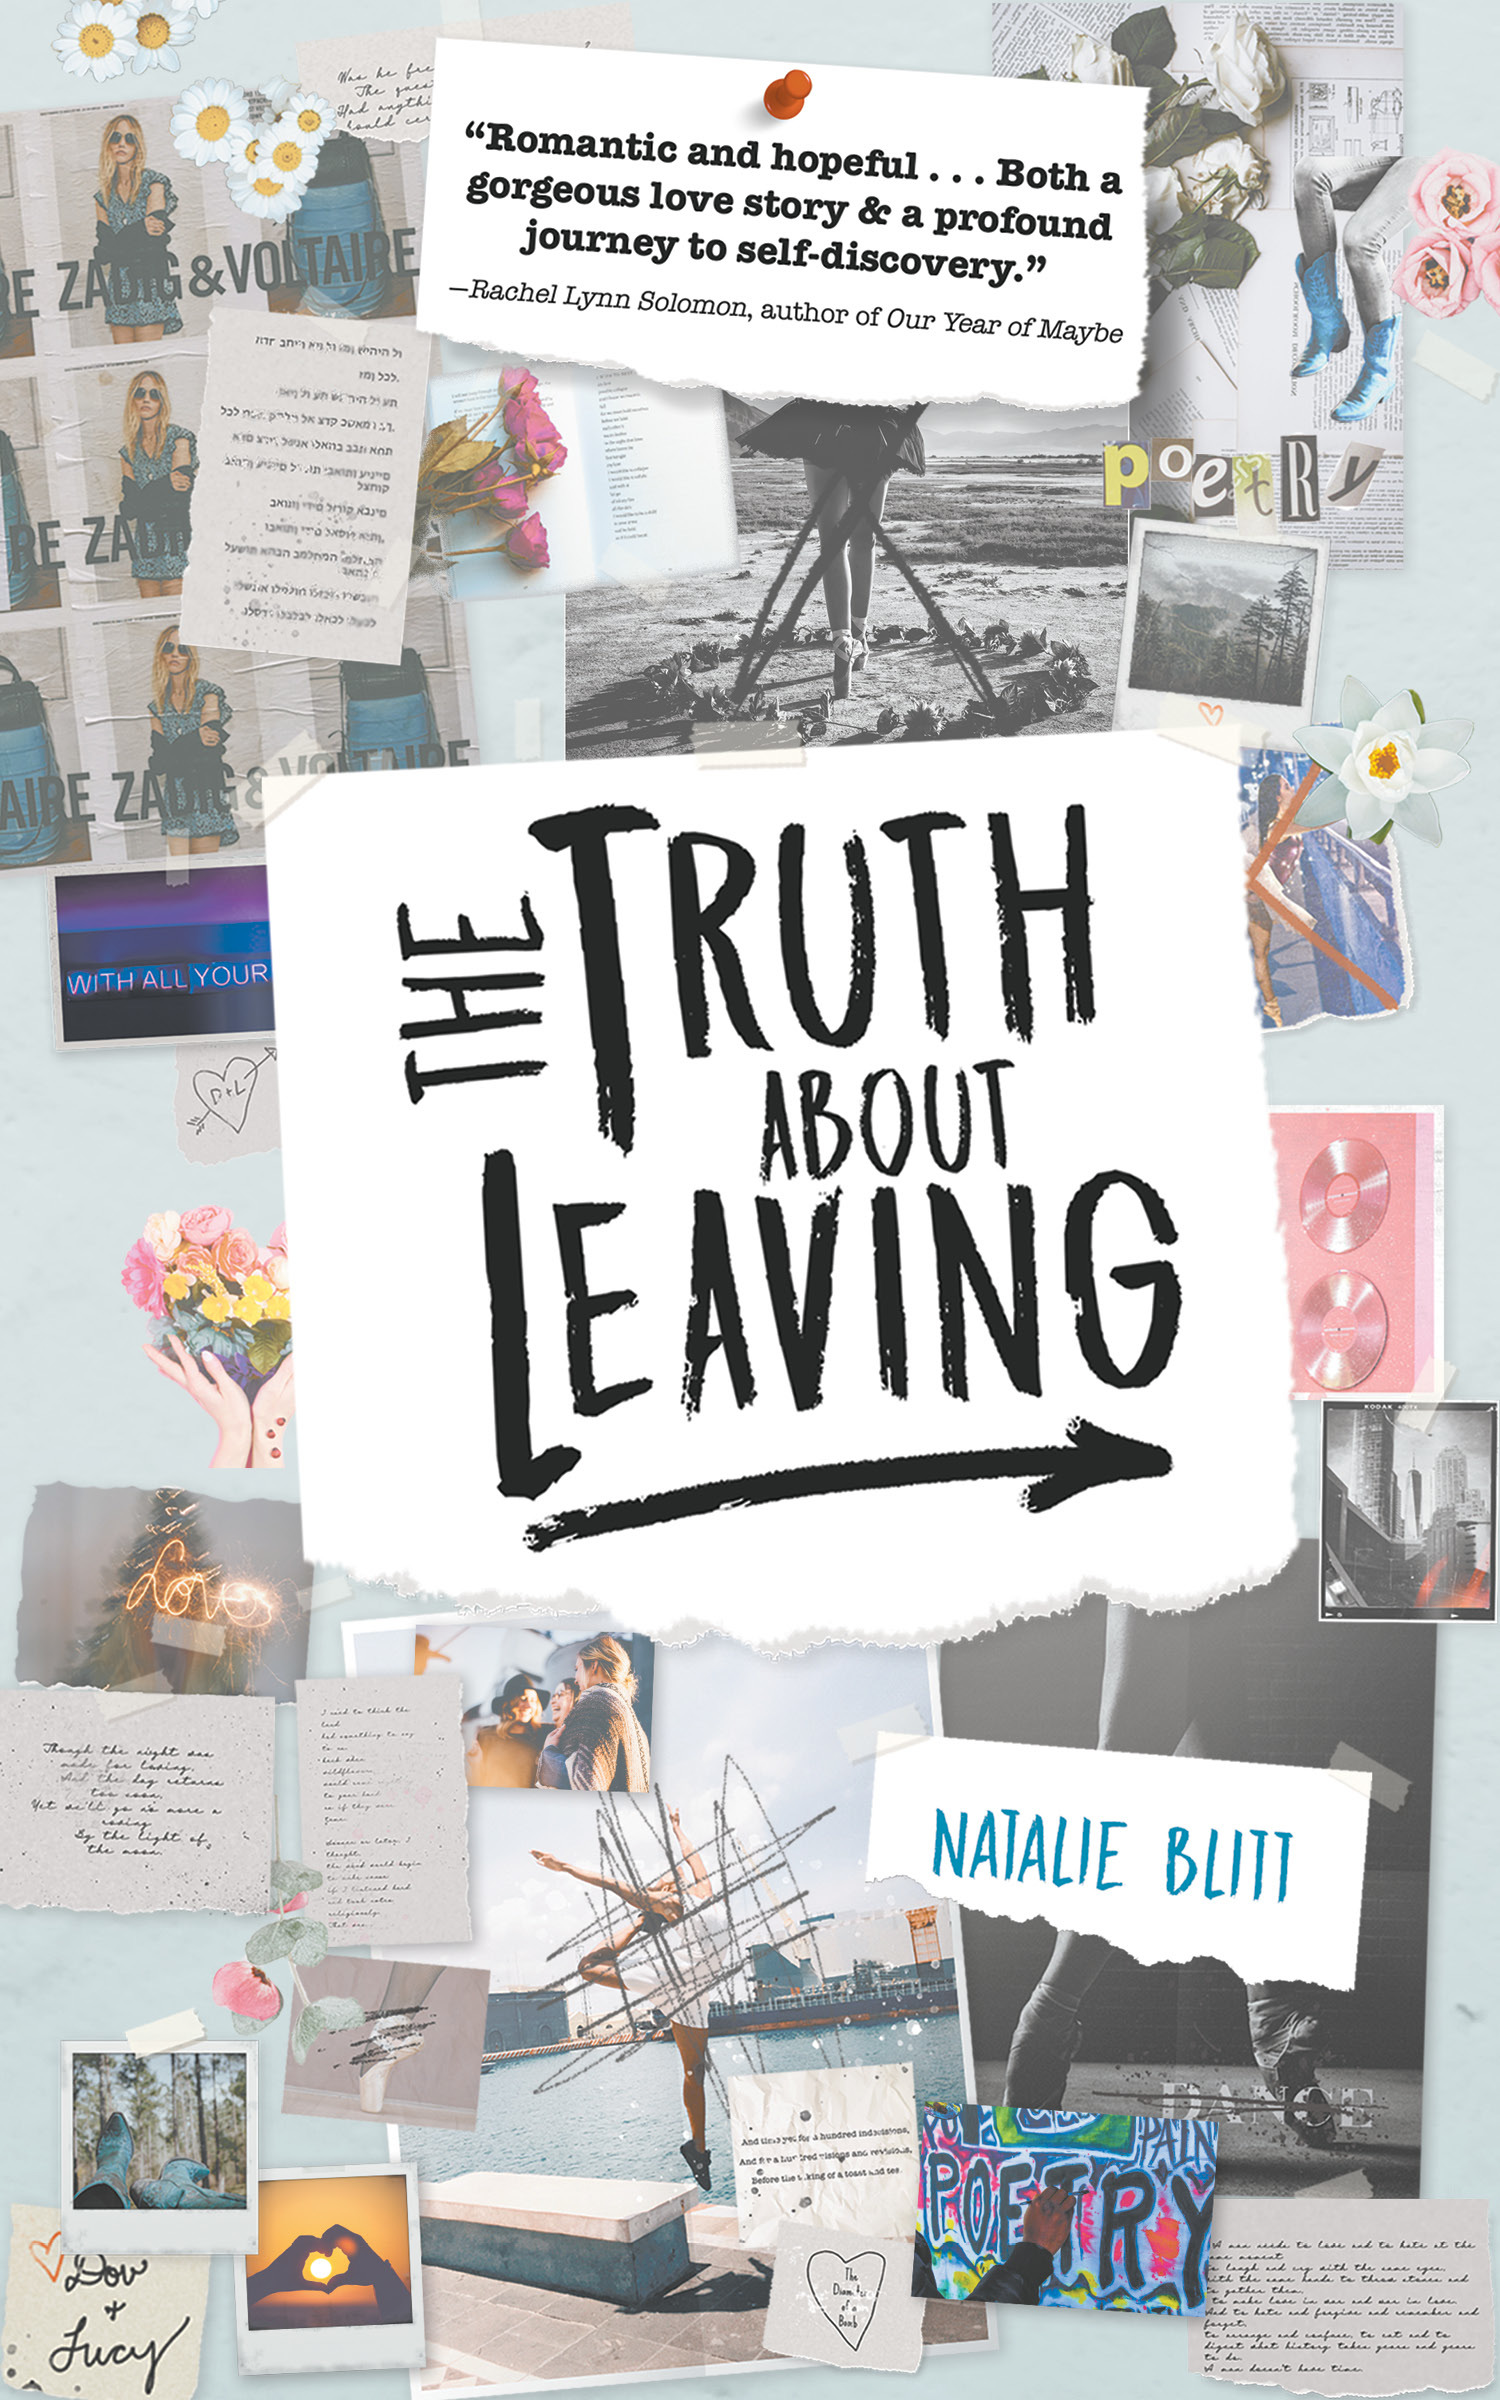 The Truth About Leaving by Natalie Blitt